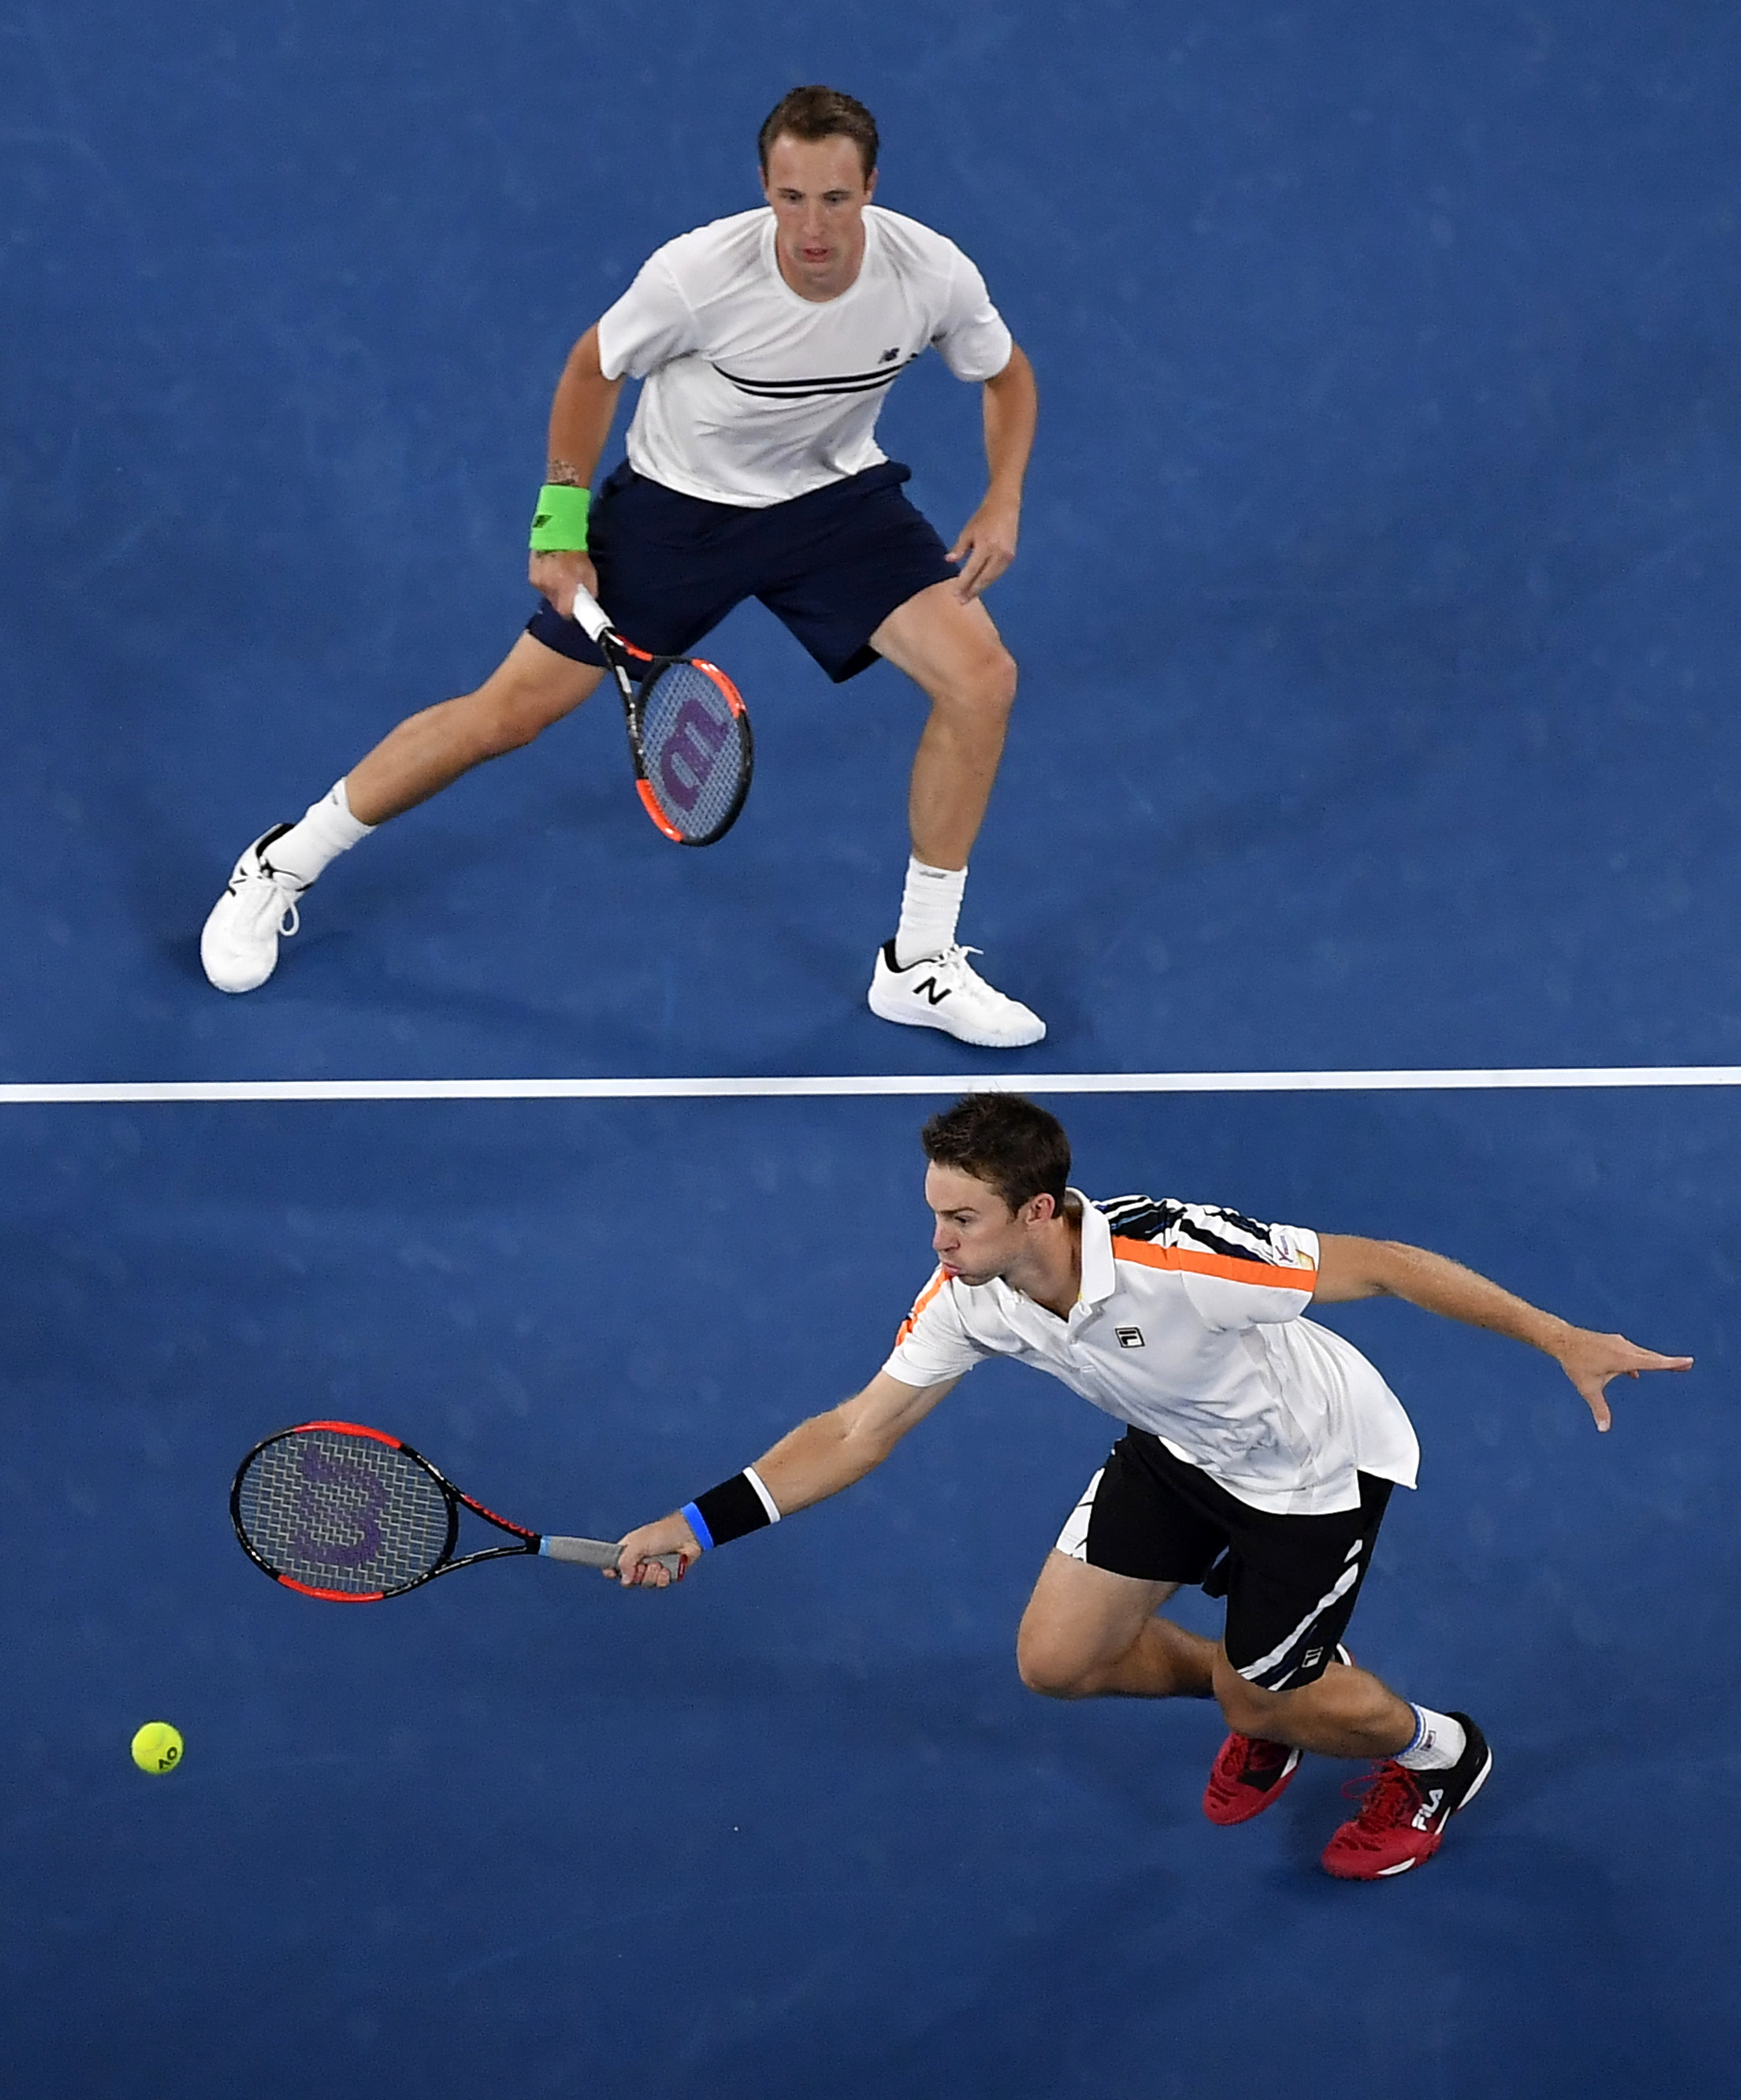 Finland's Henri Kontinen, top, watches his partner Australia's John Peers hits a forehand return in the men's doubles final against Bob and Mike Bryan of the U.S. at the Australian Open tennis championships in Melbourne, Australia, Saturday, Jan. 28, 2017